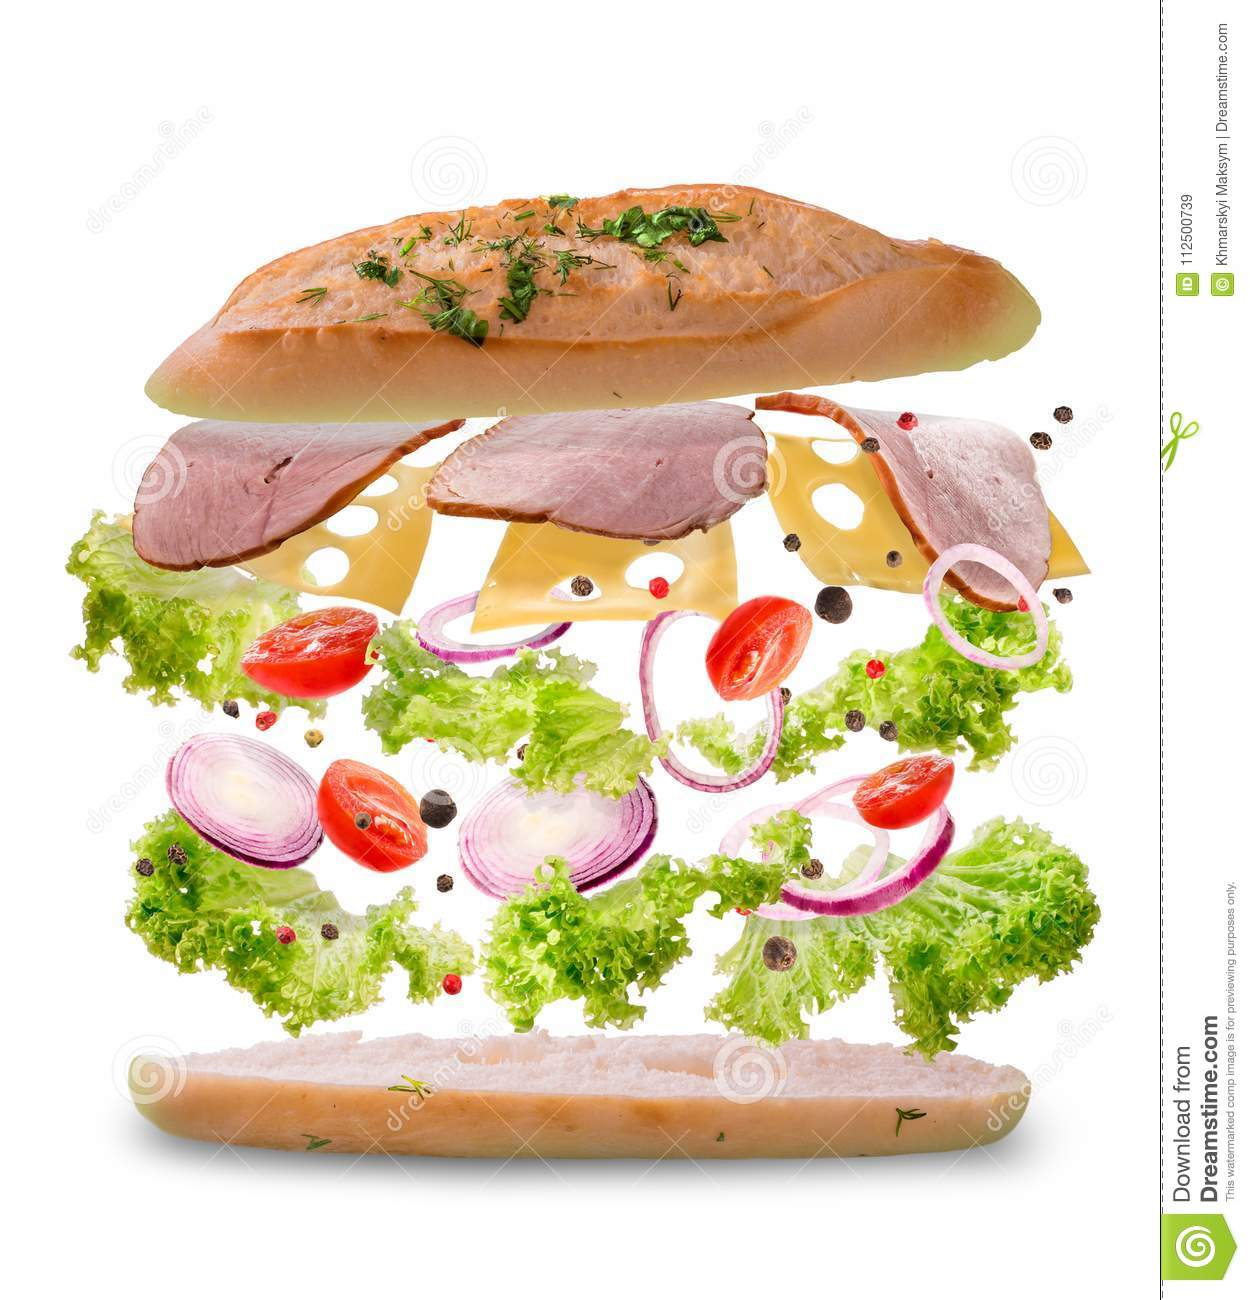 Sandwich with flying ingredients. Freeze motion. Close-up. White background.